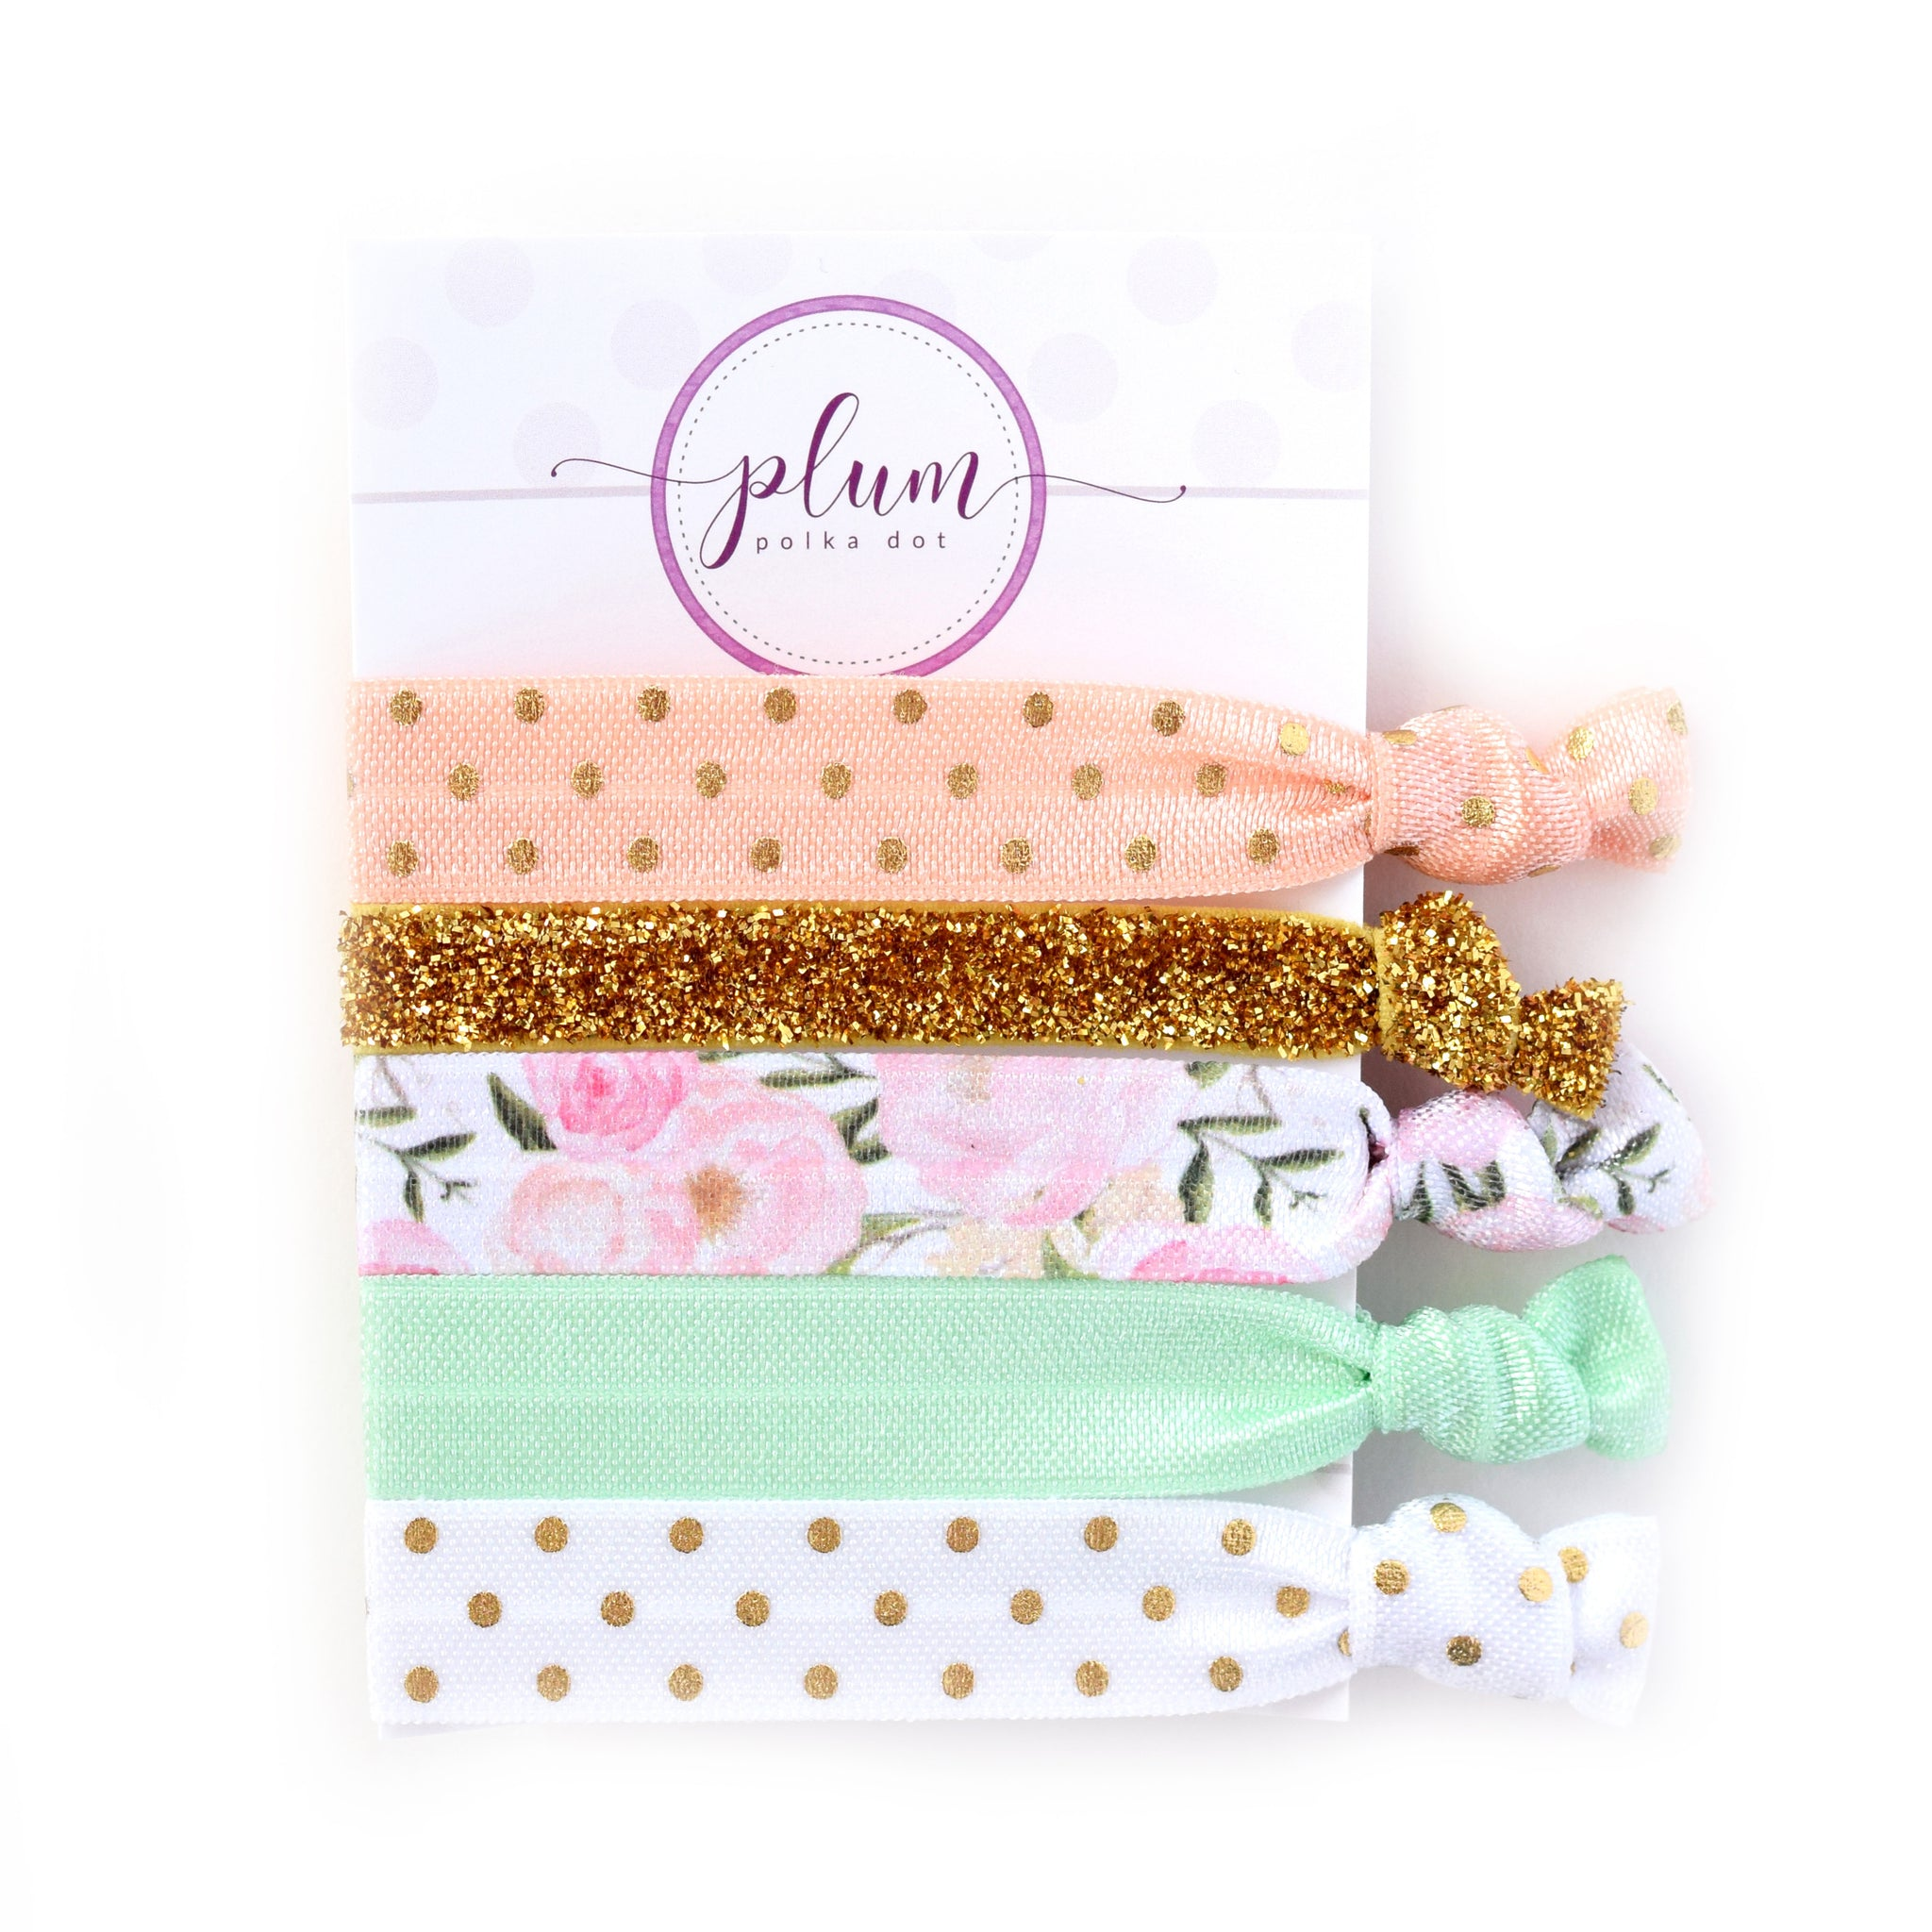 Floral Hair Ties - Set of 5 - @PlumPolkaDot